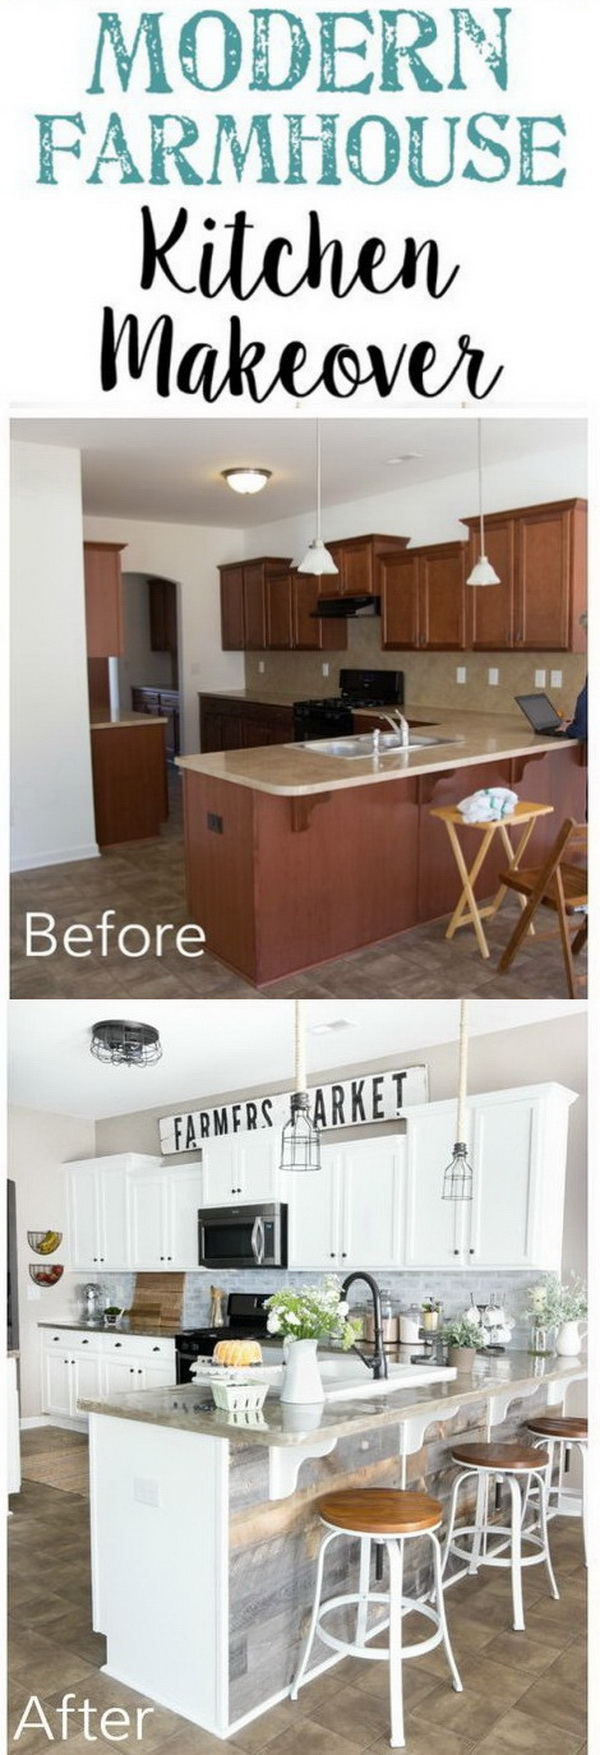 Diy Kitchen Makeover 35+ awesome diy kitchen makeover ideas - for creative juice